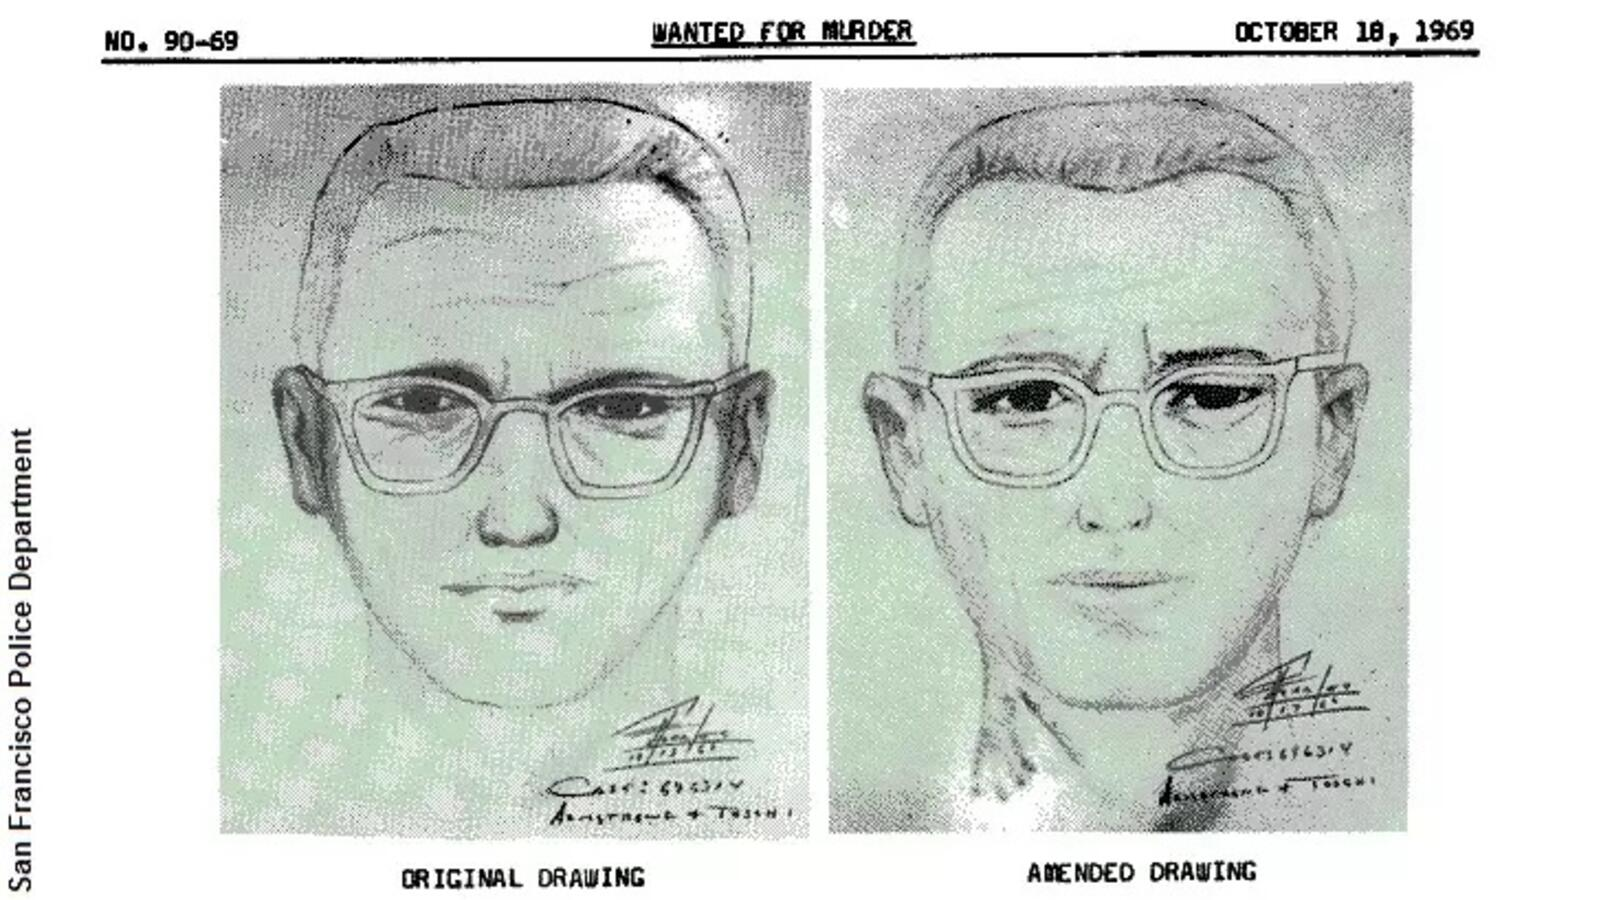 French Engineer Claims to Have Cracked Zodiac Killer's Remaining Ciphers